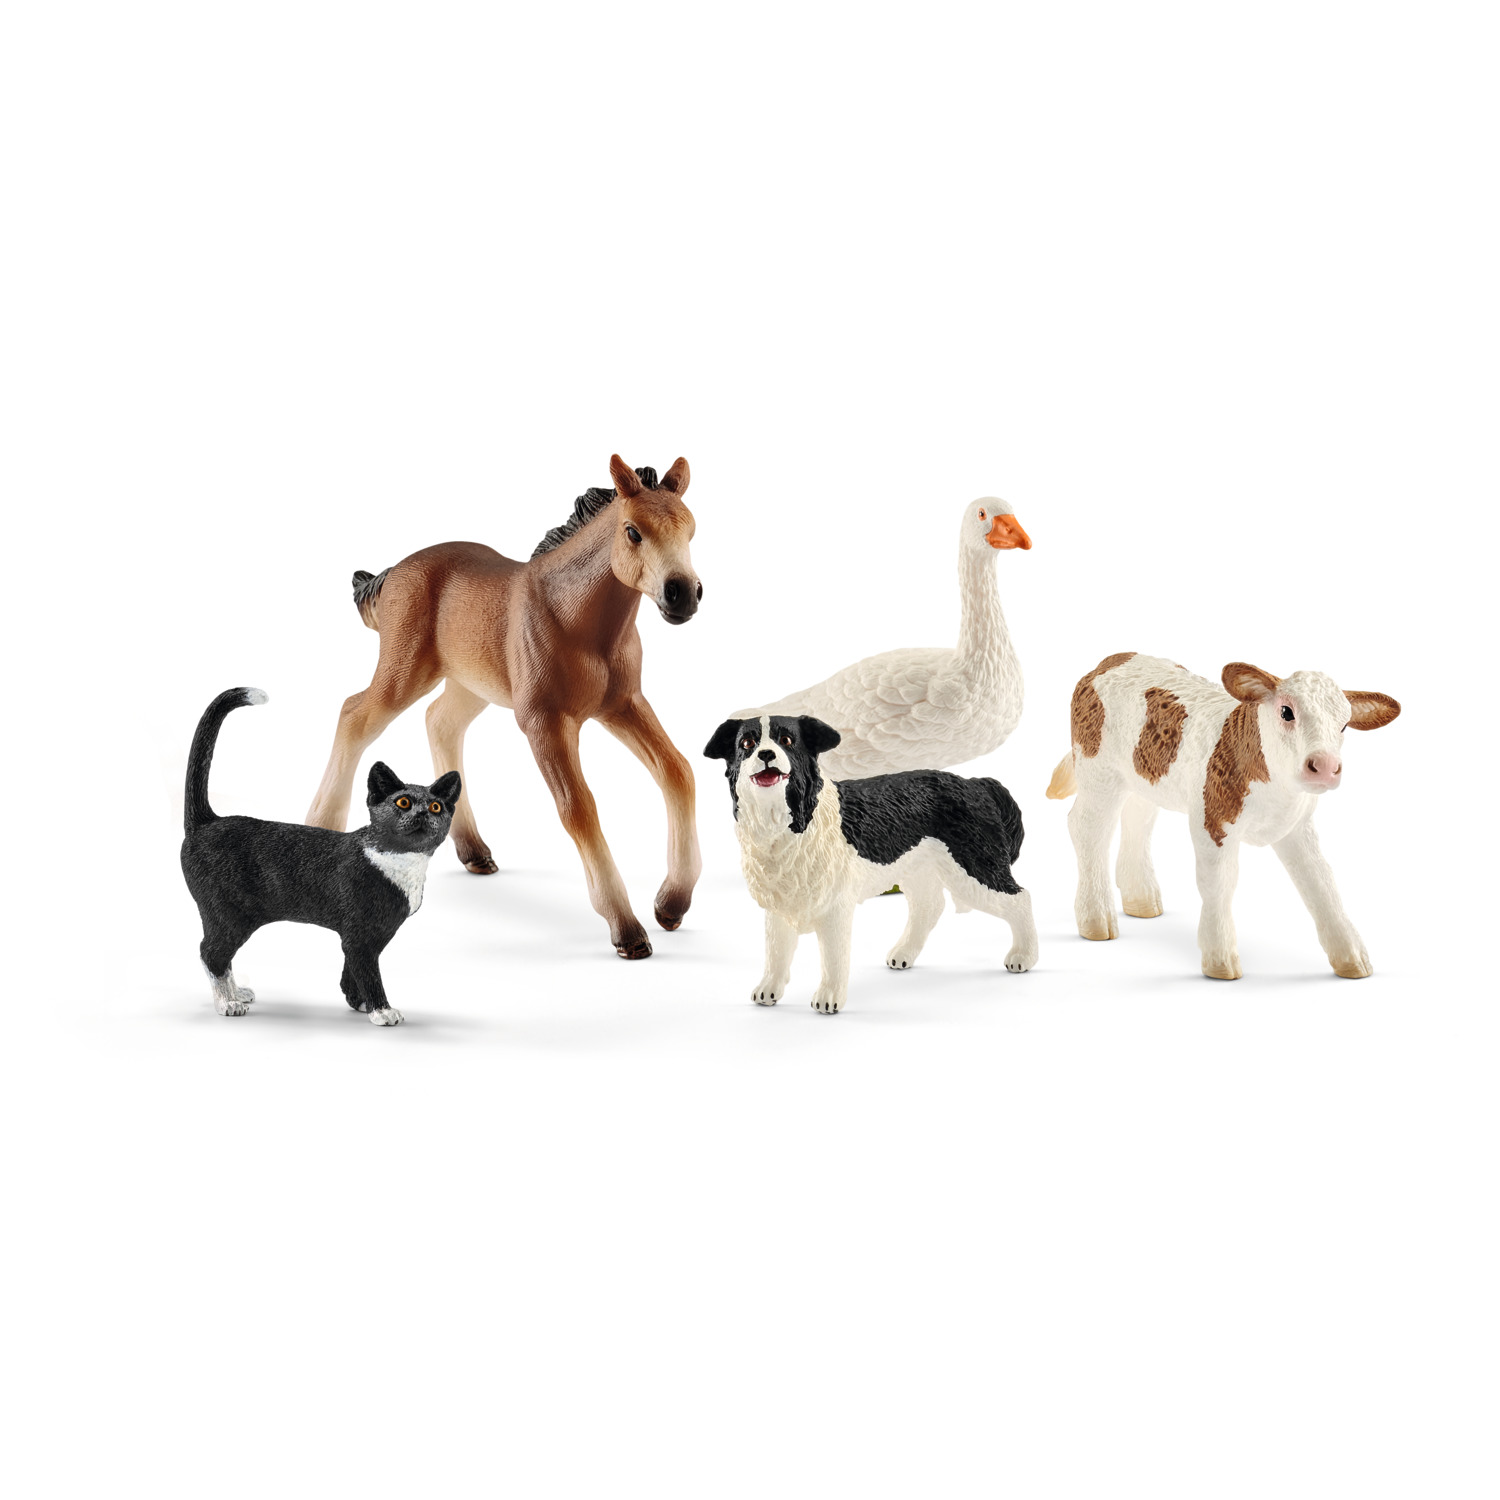 Schleich Farm World, Farm Animals (Dog, Cat, Horse, Cow, Duck) Toy Figures by Schleich USA Inc